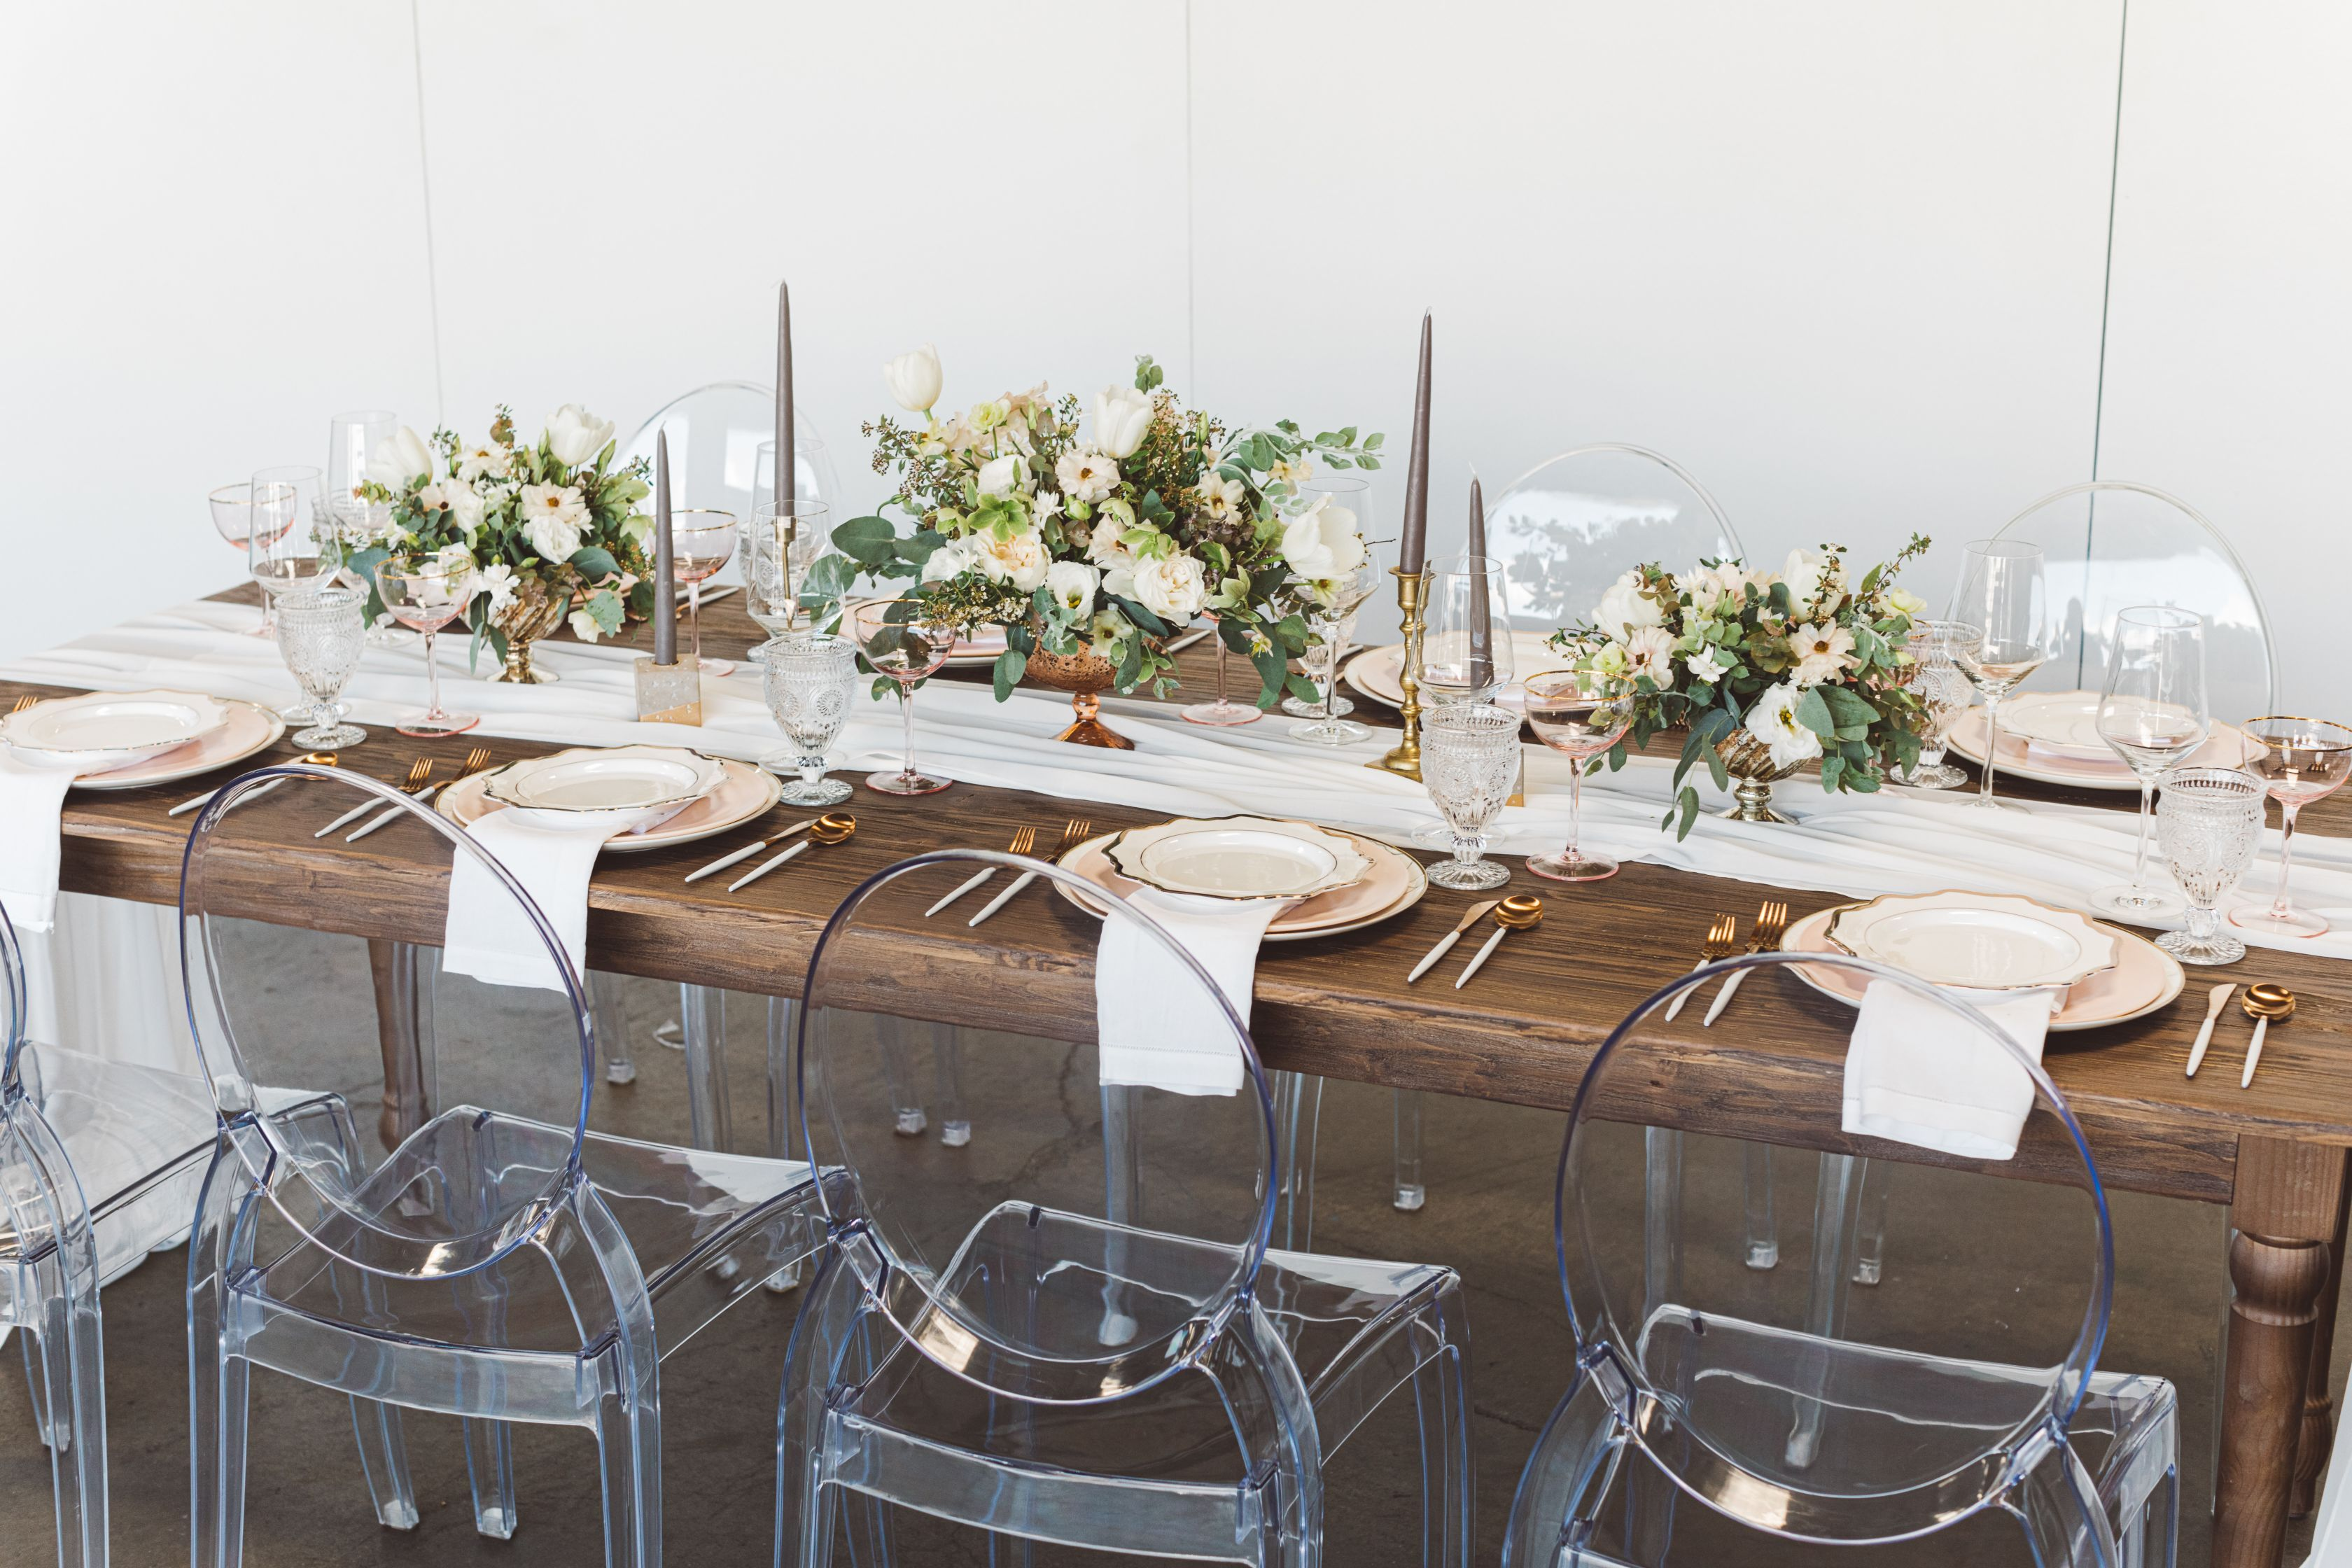 Meet Our New Plank Table On The Blog Signature Party Rentals California Southern California Orange County Wedding Seating With Images Plank Table Plank Table